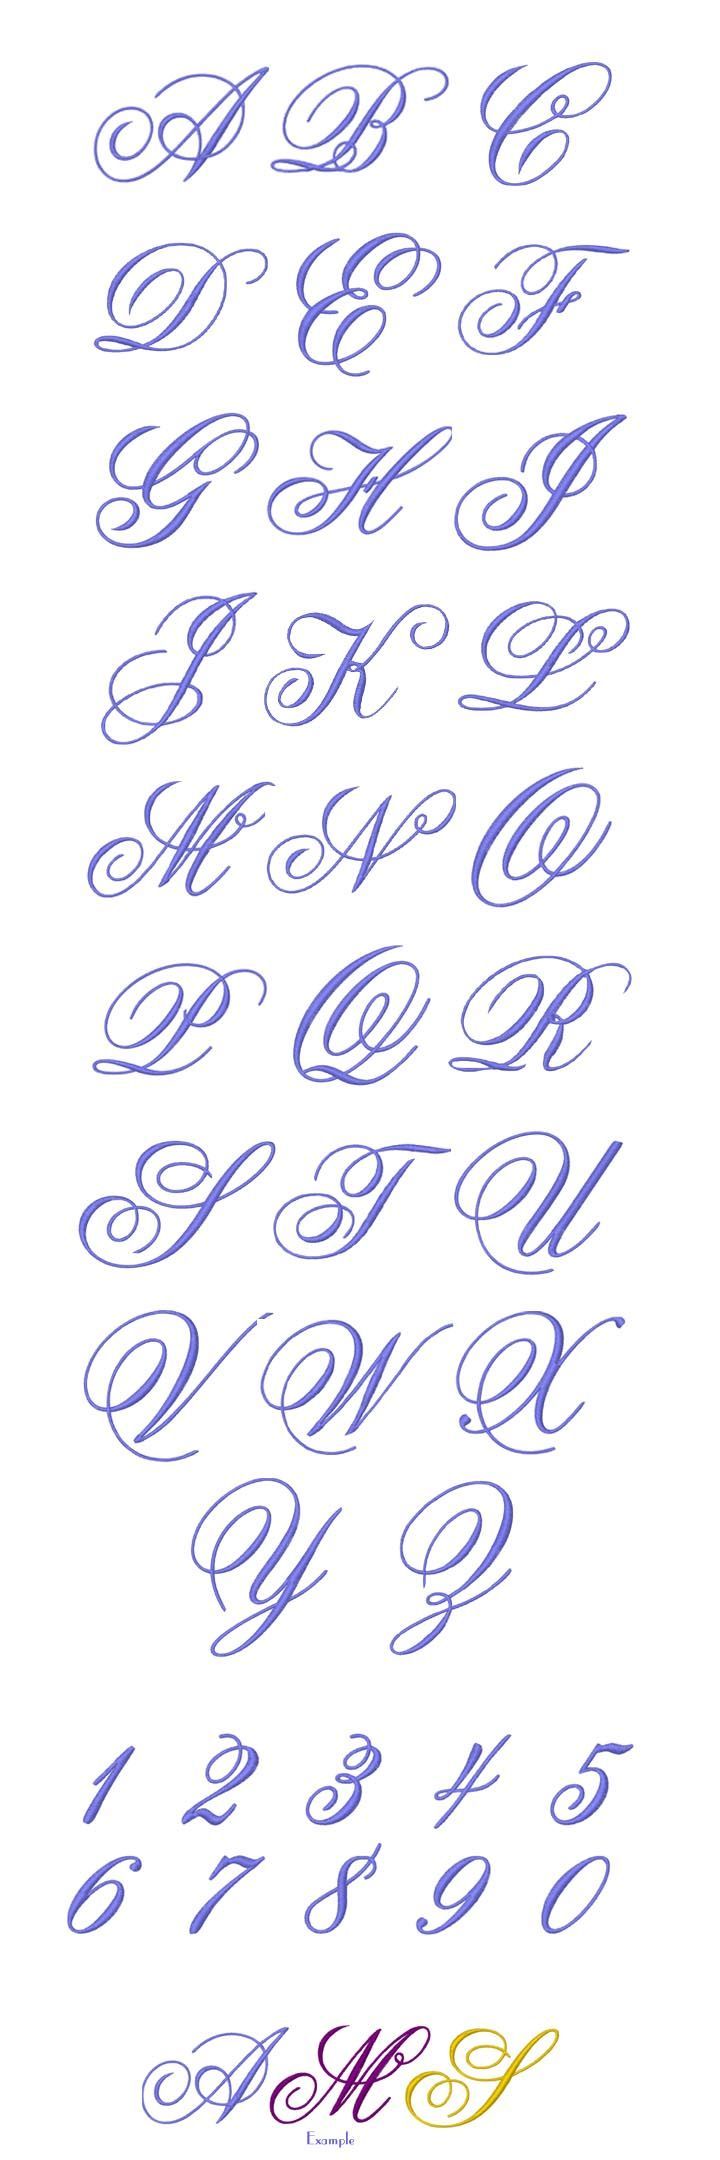 MONOGRAM Embroidery Designs Free Embroider Design Patterns Applique, smartneedle.com